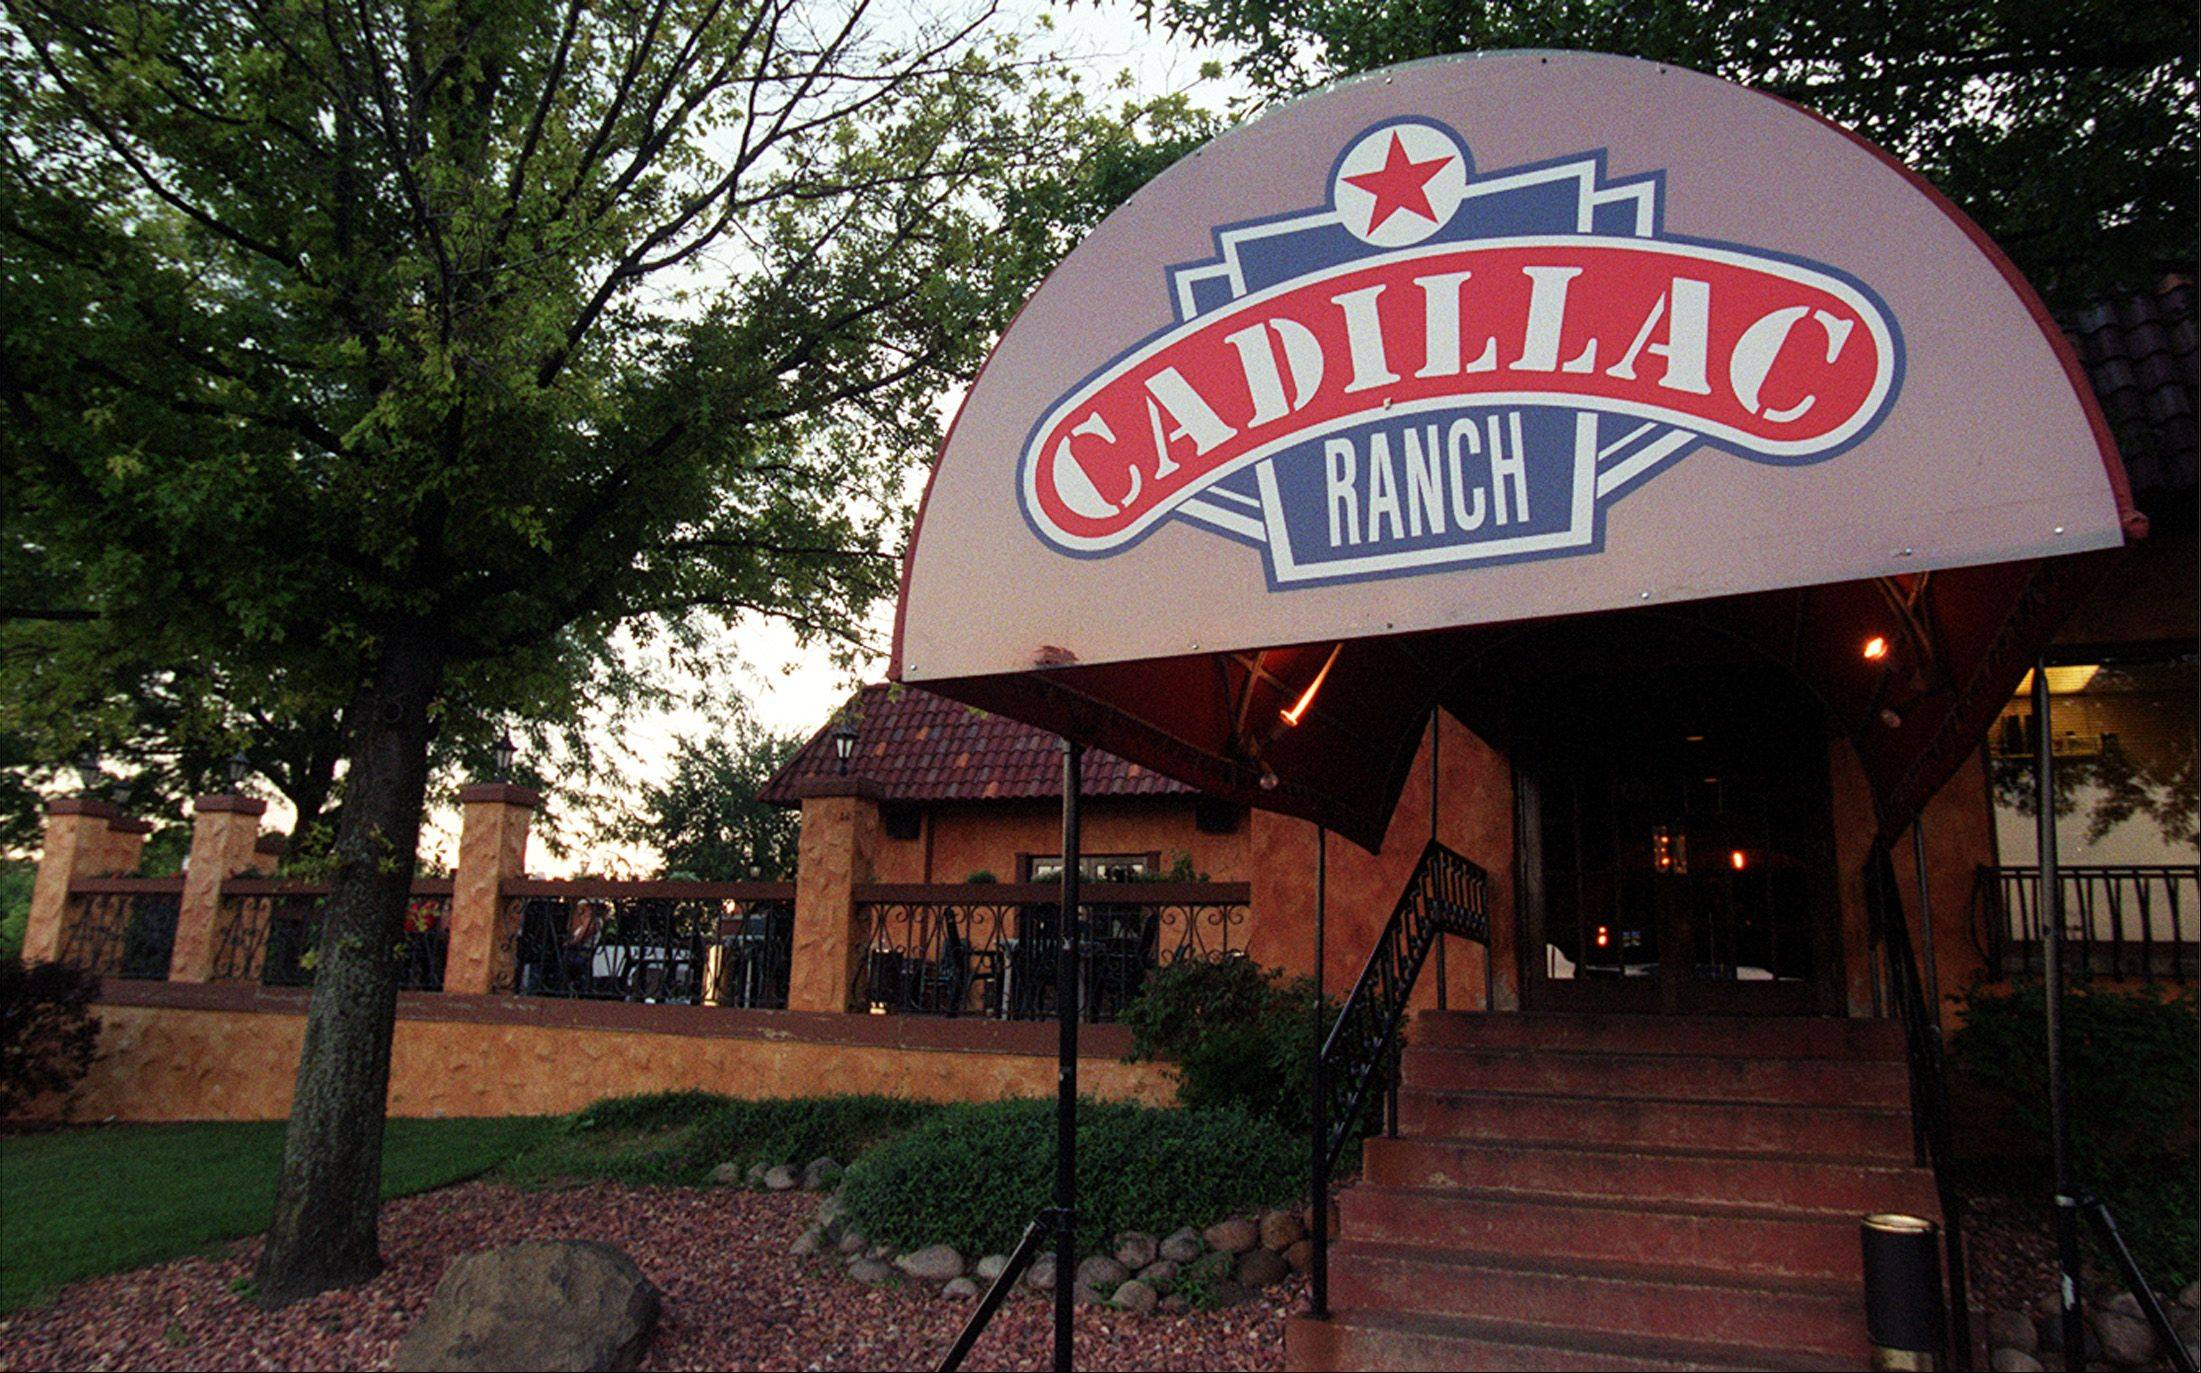 This is the entrance to Cadillac Ranch in Bartlett.